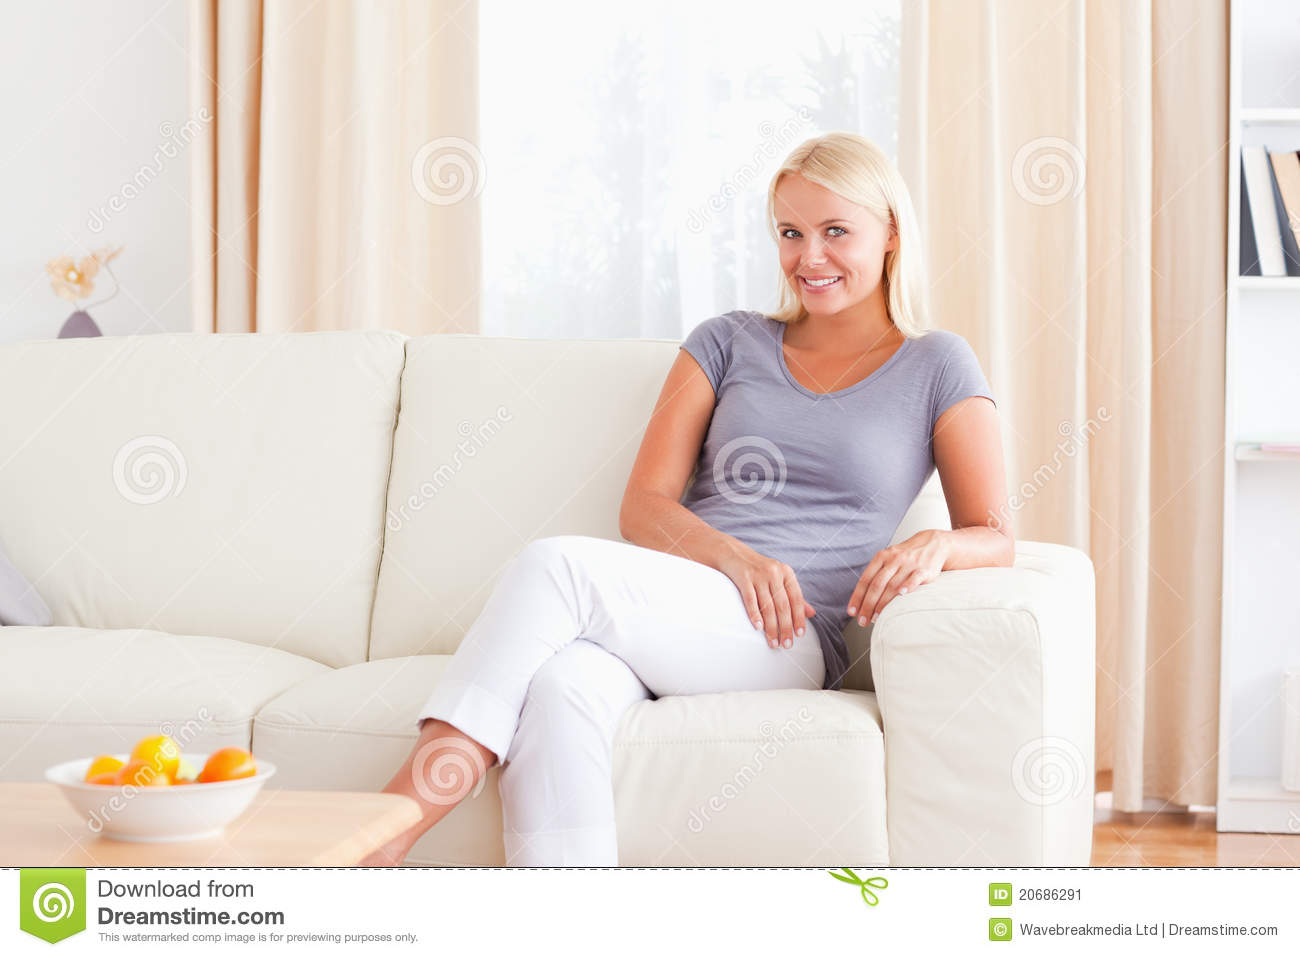 woman sitting on a couch stock image image of enjoy. Black Bedroom Furniture Sets. Home Design Ideas